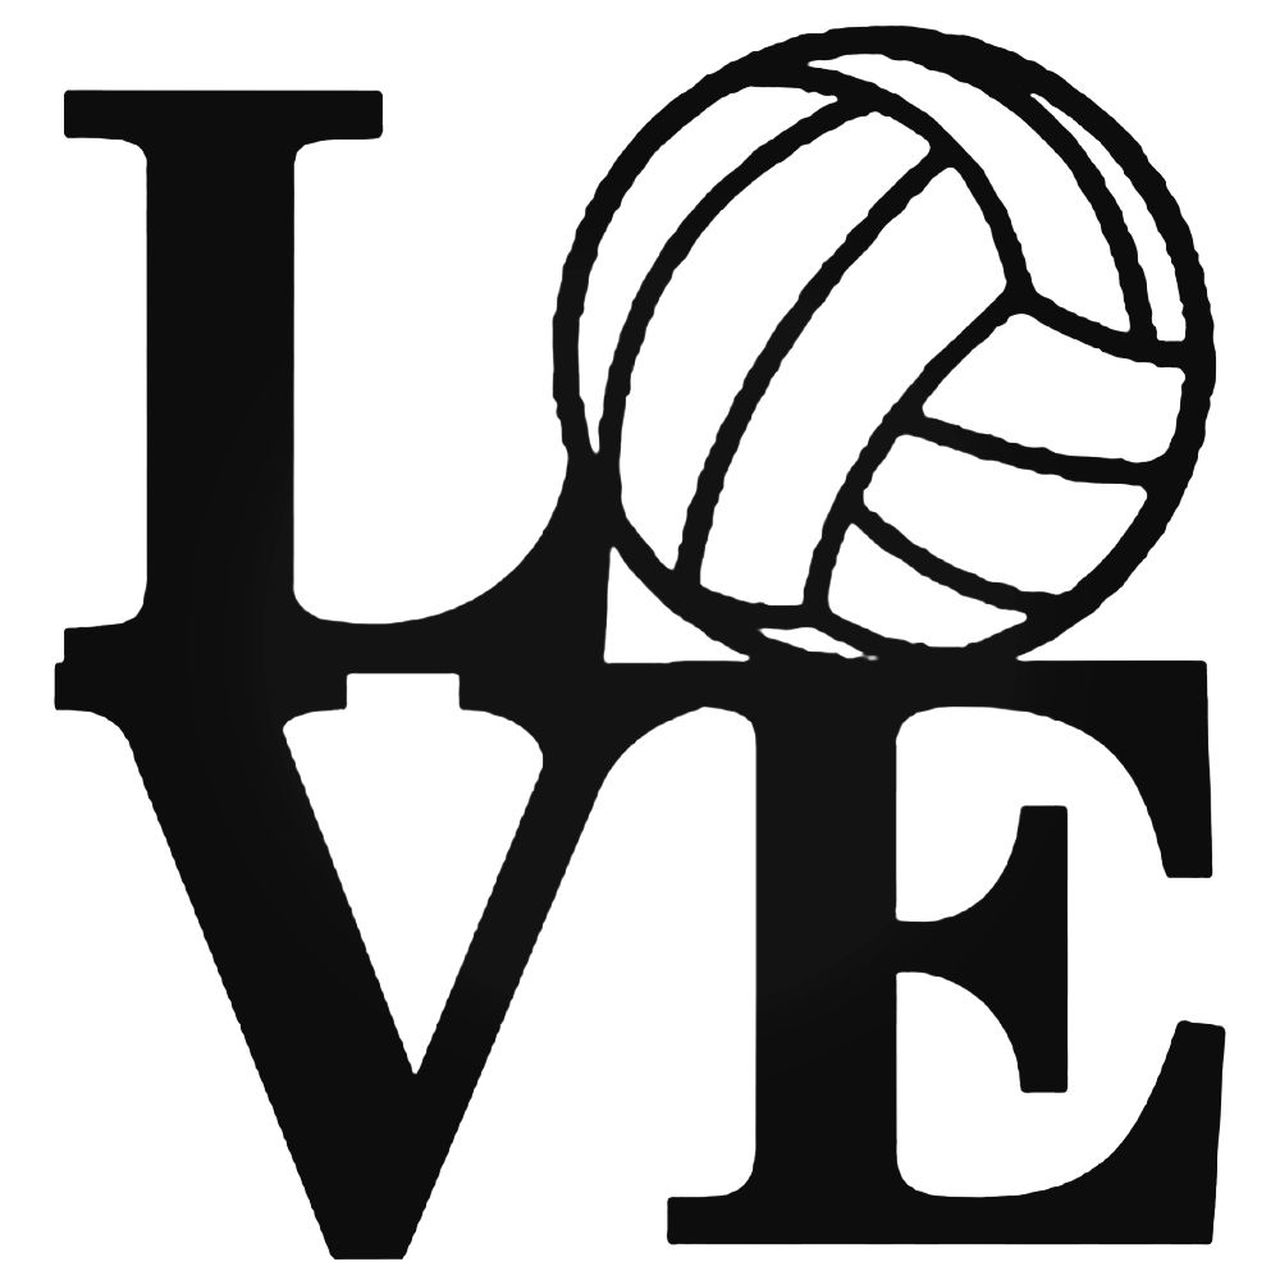 Volleyball Love 005 Decal Sticker.